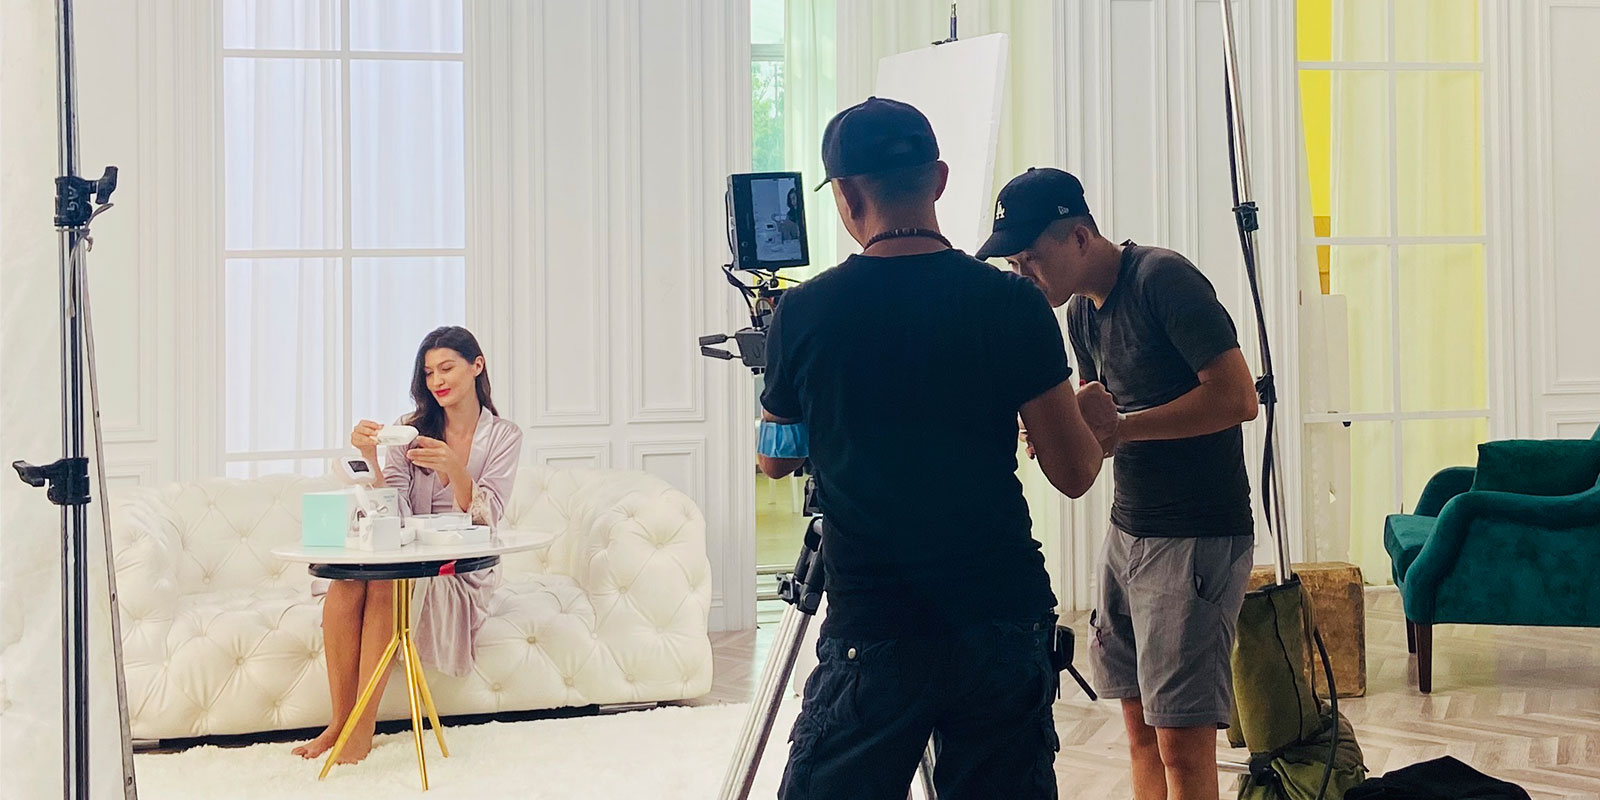 the shooting scene of Dearcare product publicity film